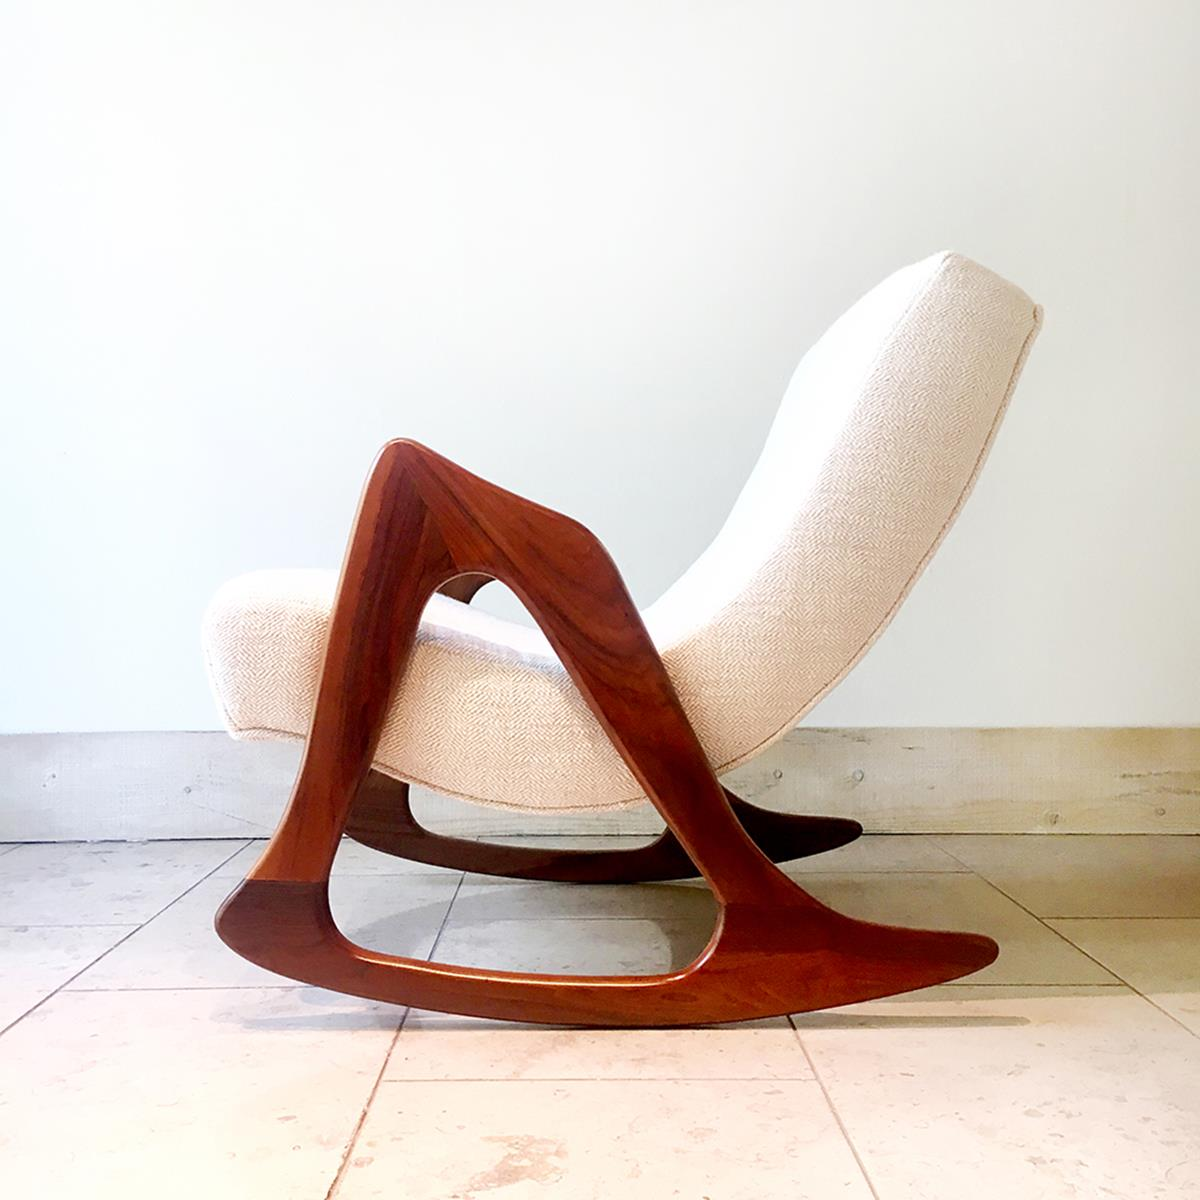 adrian pearsall rocking chair large armless slipcover talisman and stool 1960s alternate image previous item next